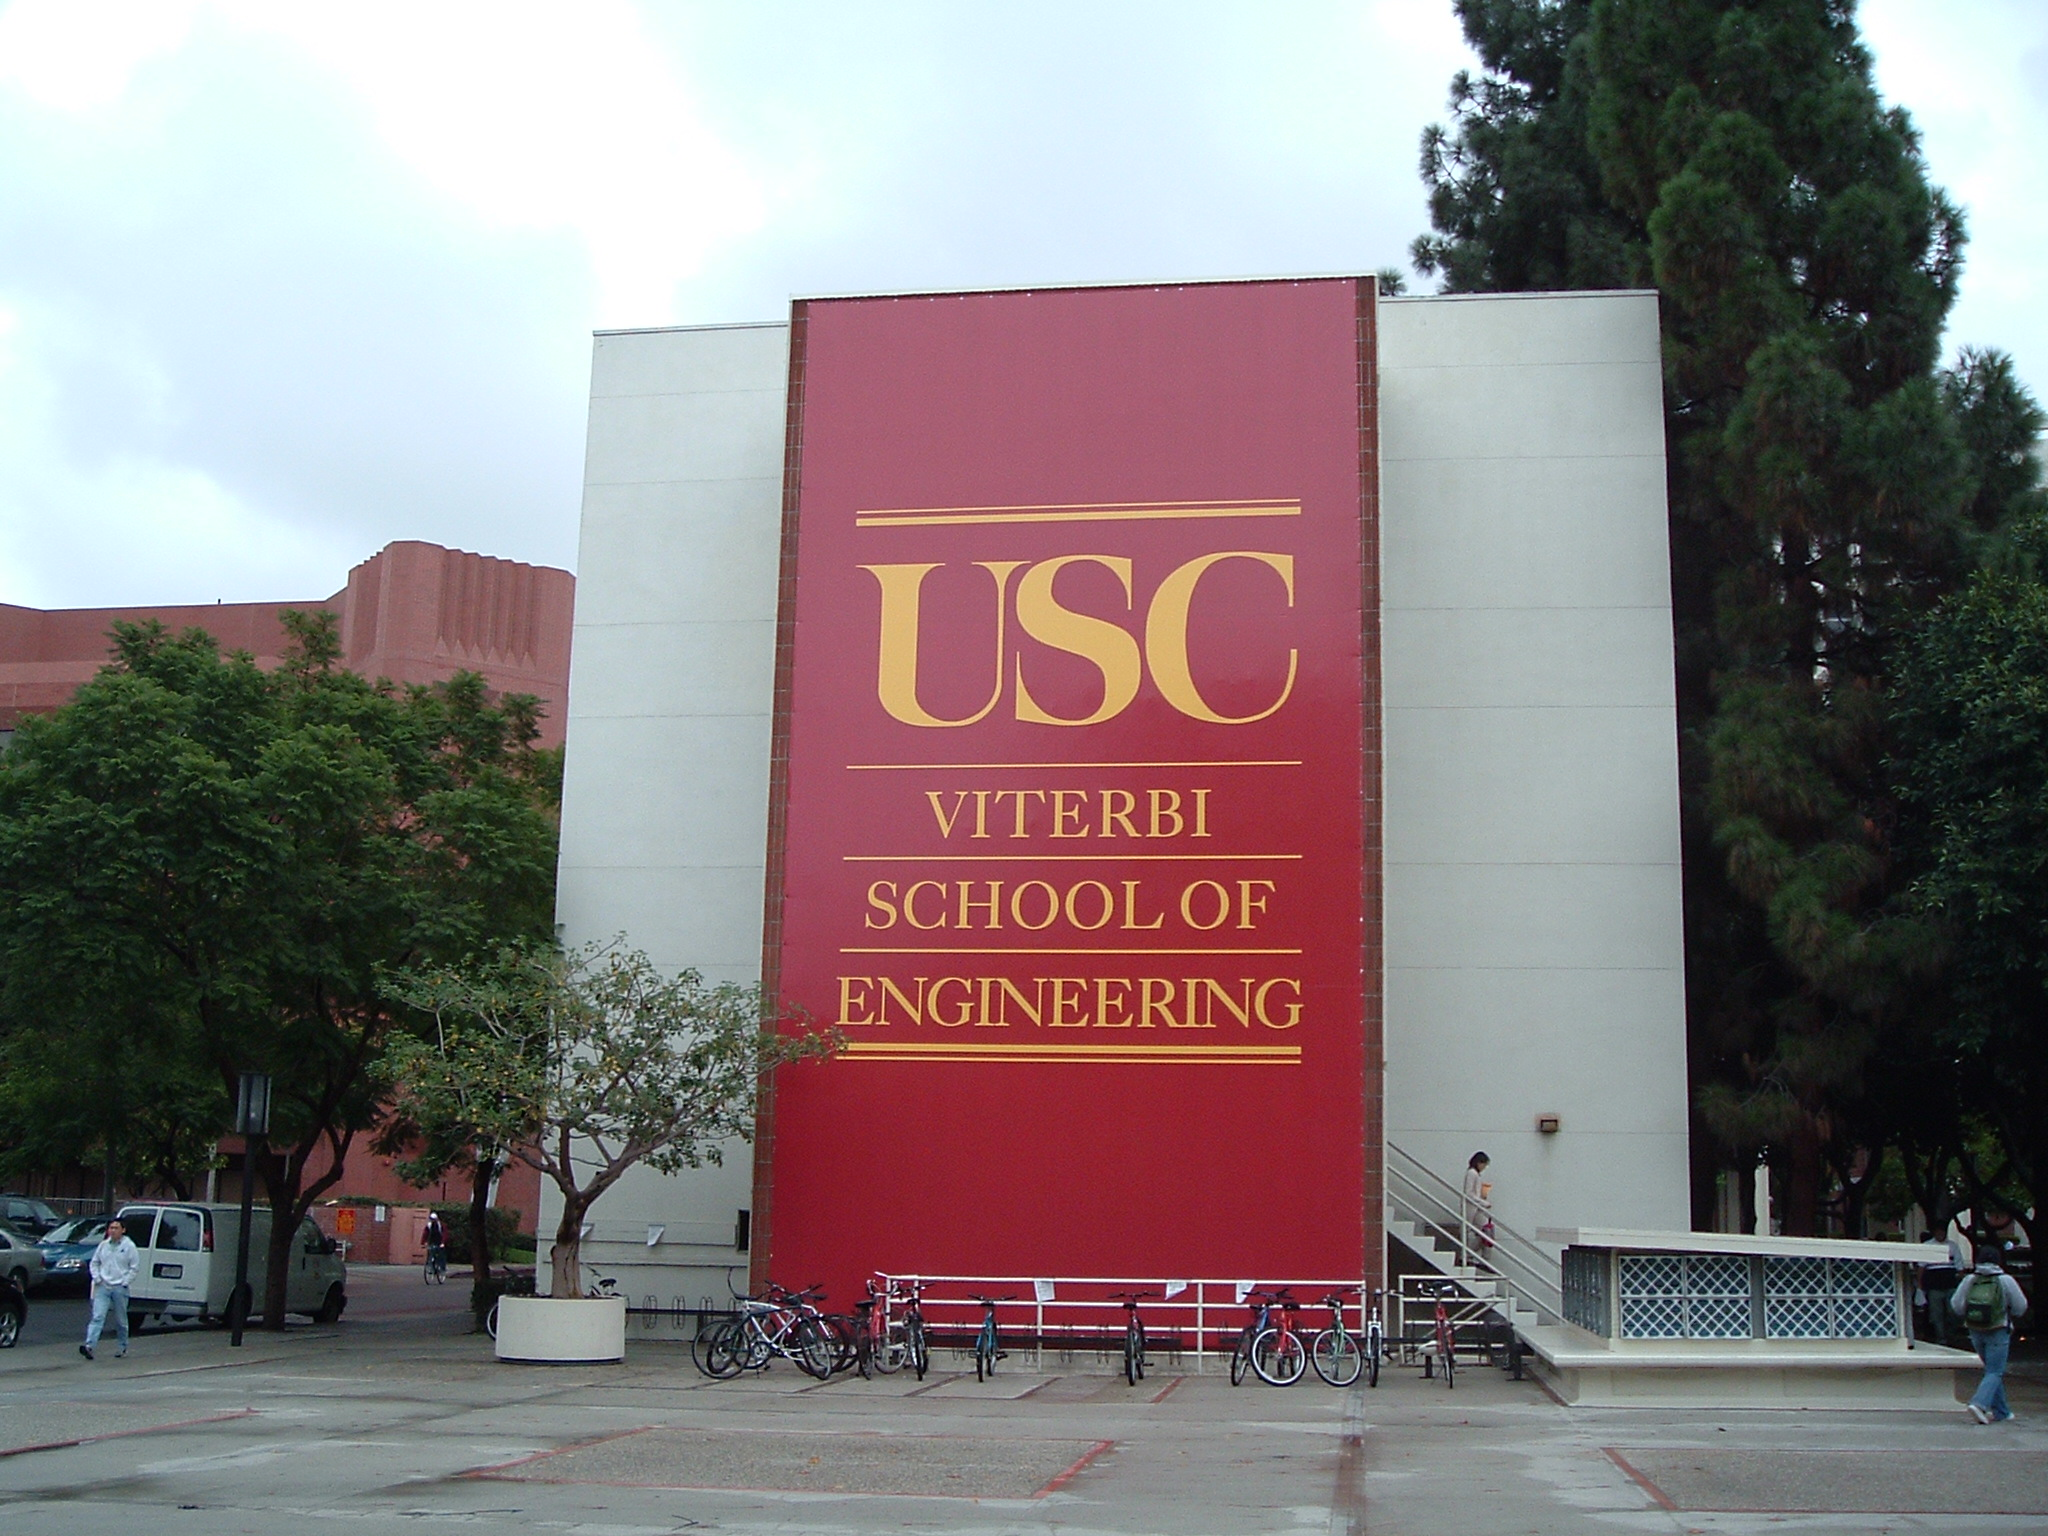 File:USC-Viterbi School of Engineering.jpg - Wikimedia Commons